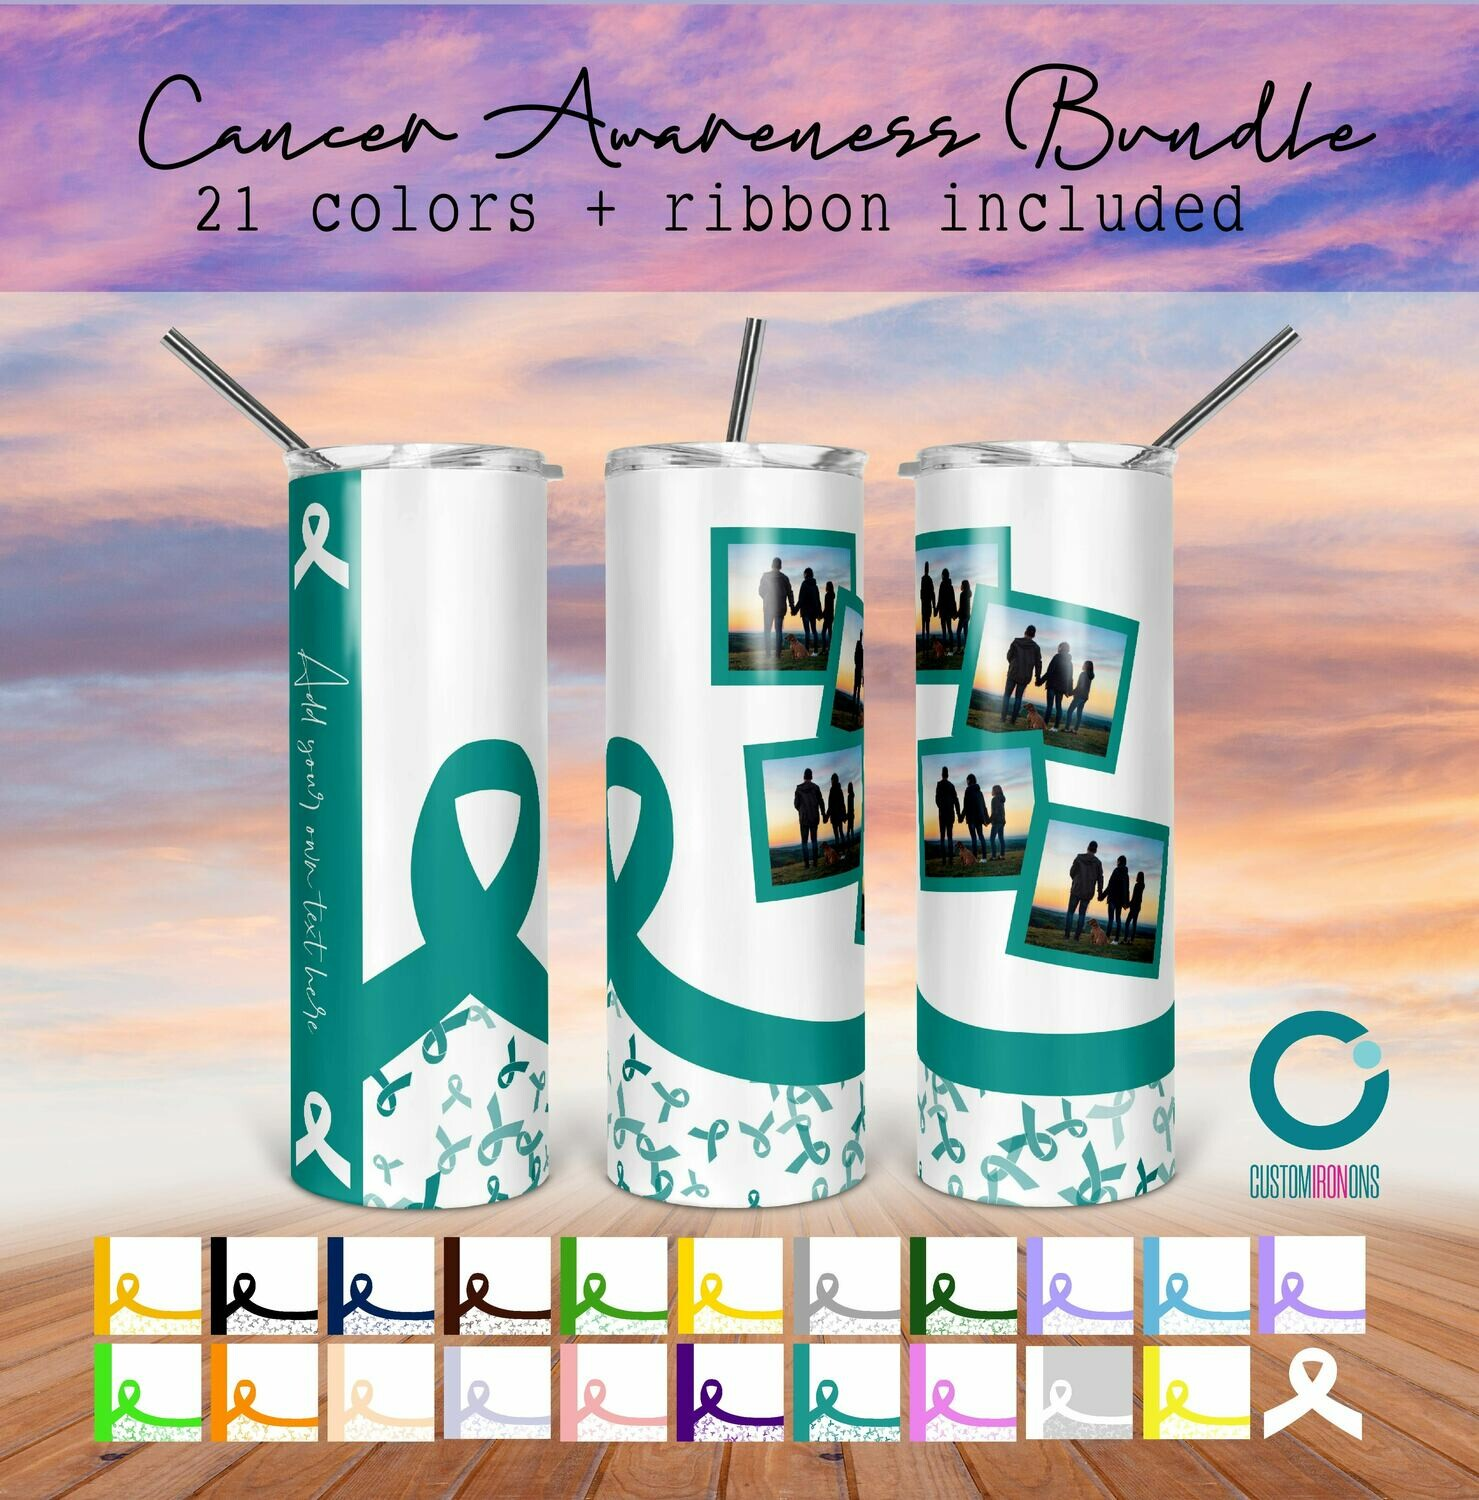 Cancer Awareness Bundle - 21 colors + Ribbon - Add your own Text - 20oz Taper + STRAIGHT TUMBLER PNG Sublimation